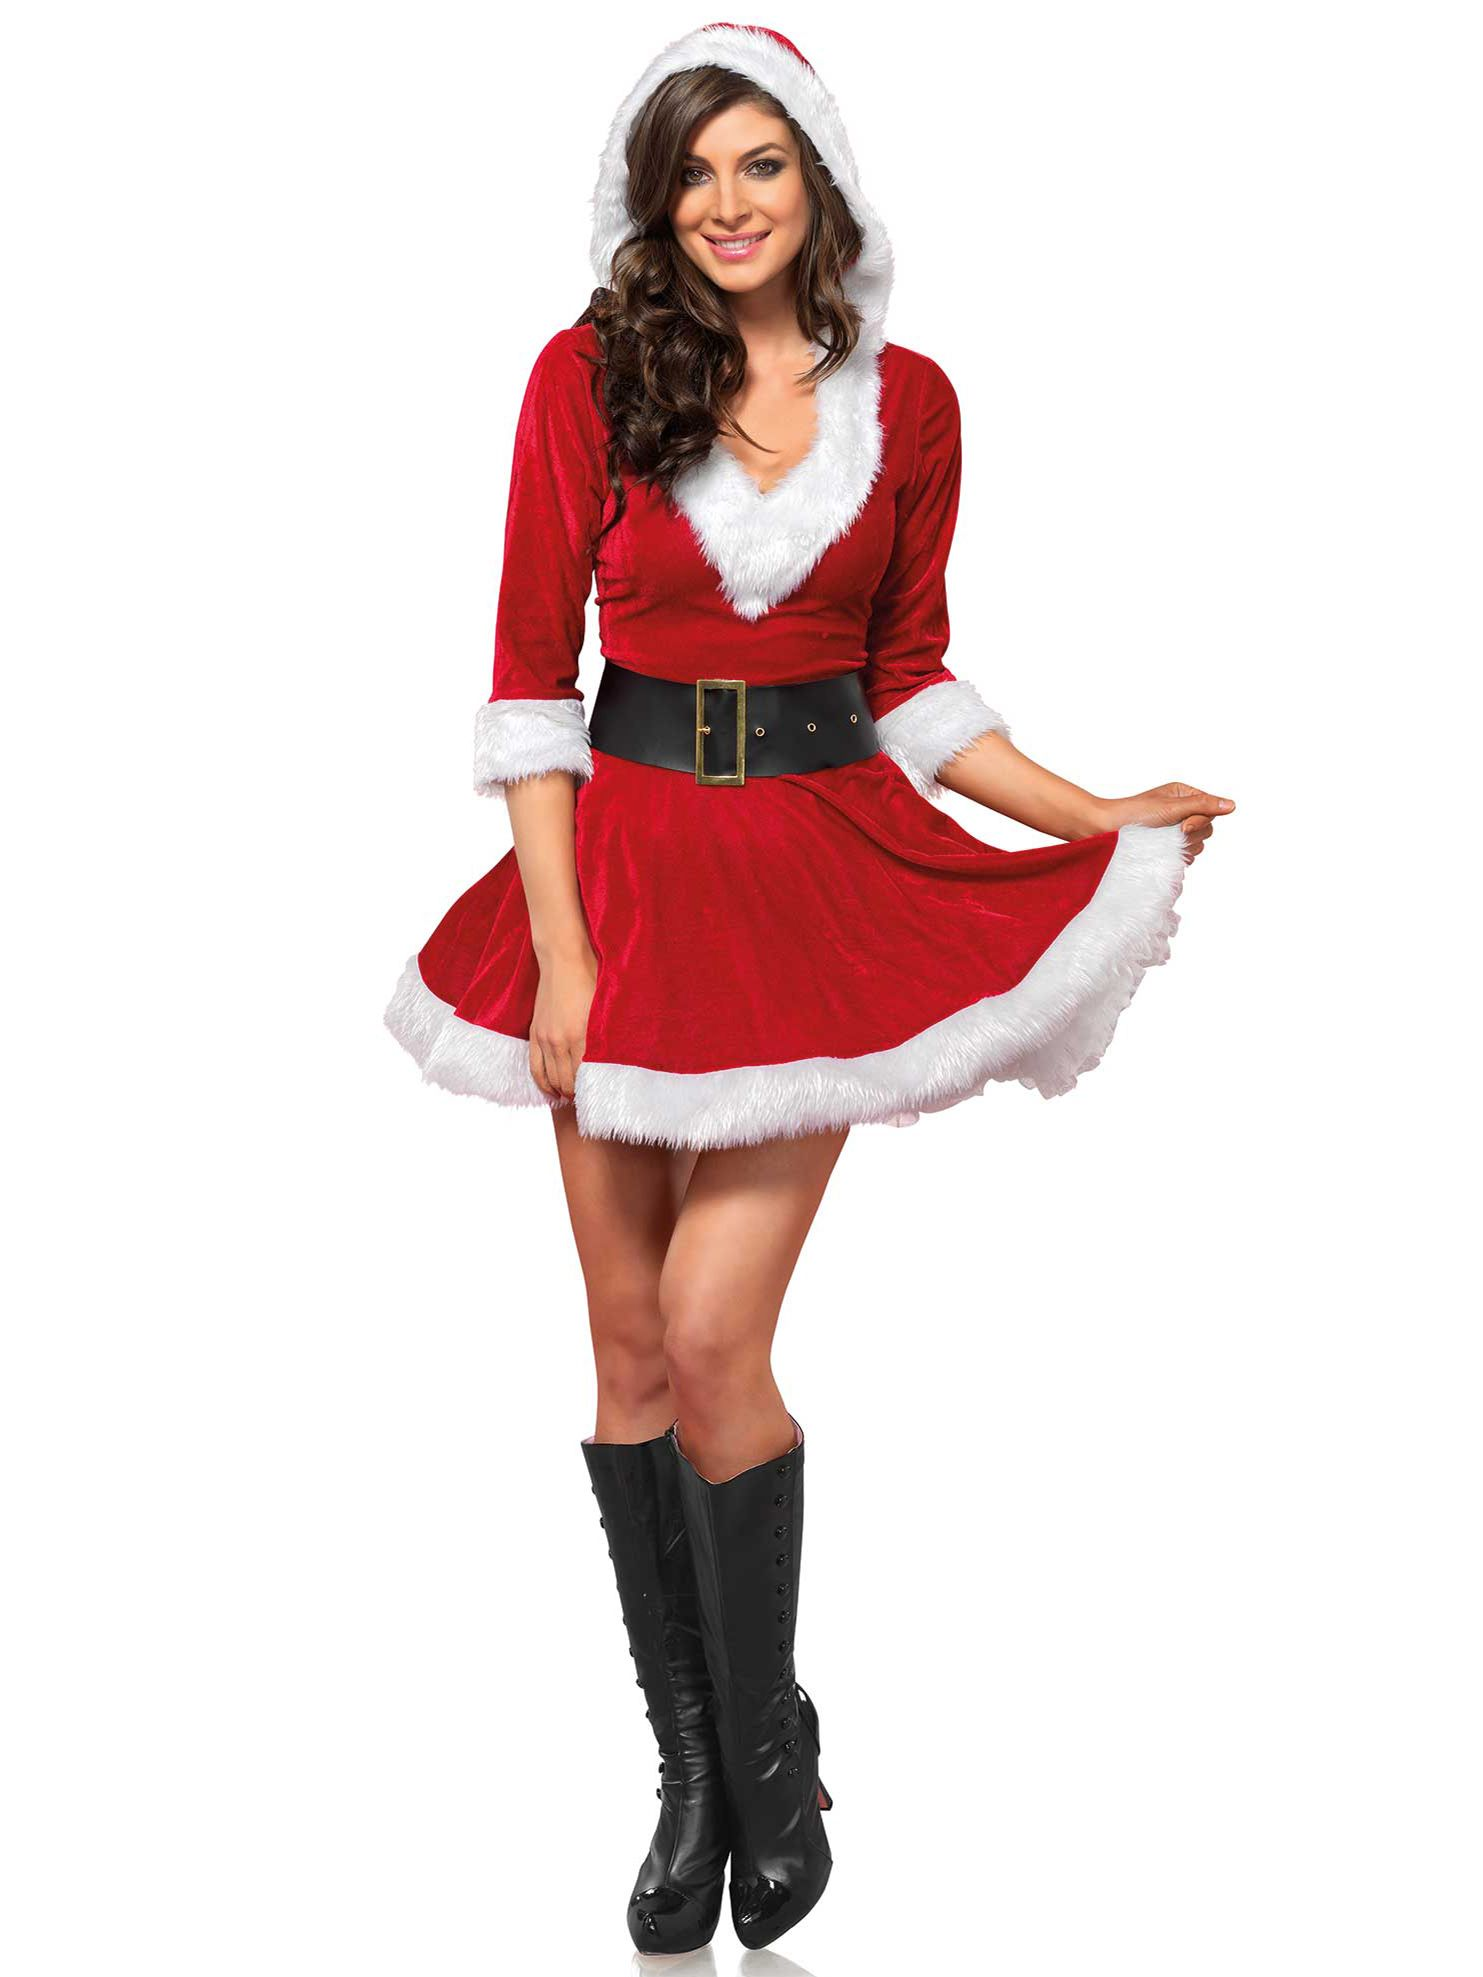 d14bcf7c2c8 Mrs Claus dress for women  This Christmas costume for women consists of a  hooded dress and a belt (boots not included). The dress has a red velvet  fabric ...